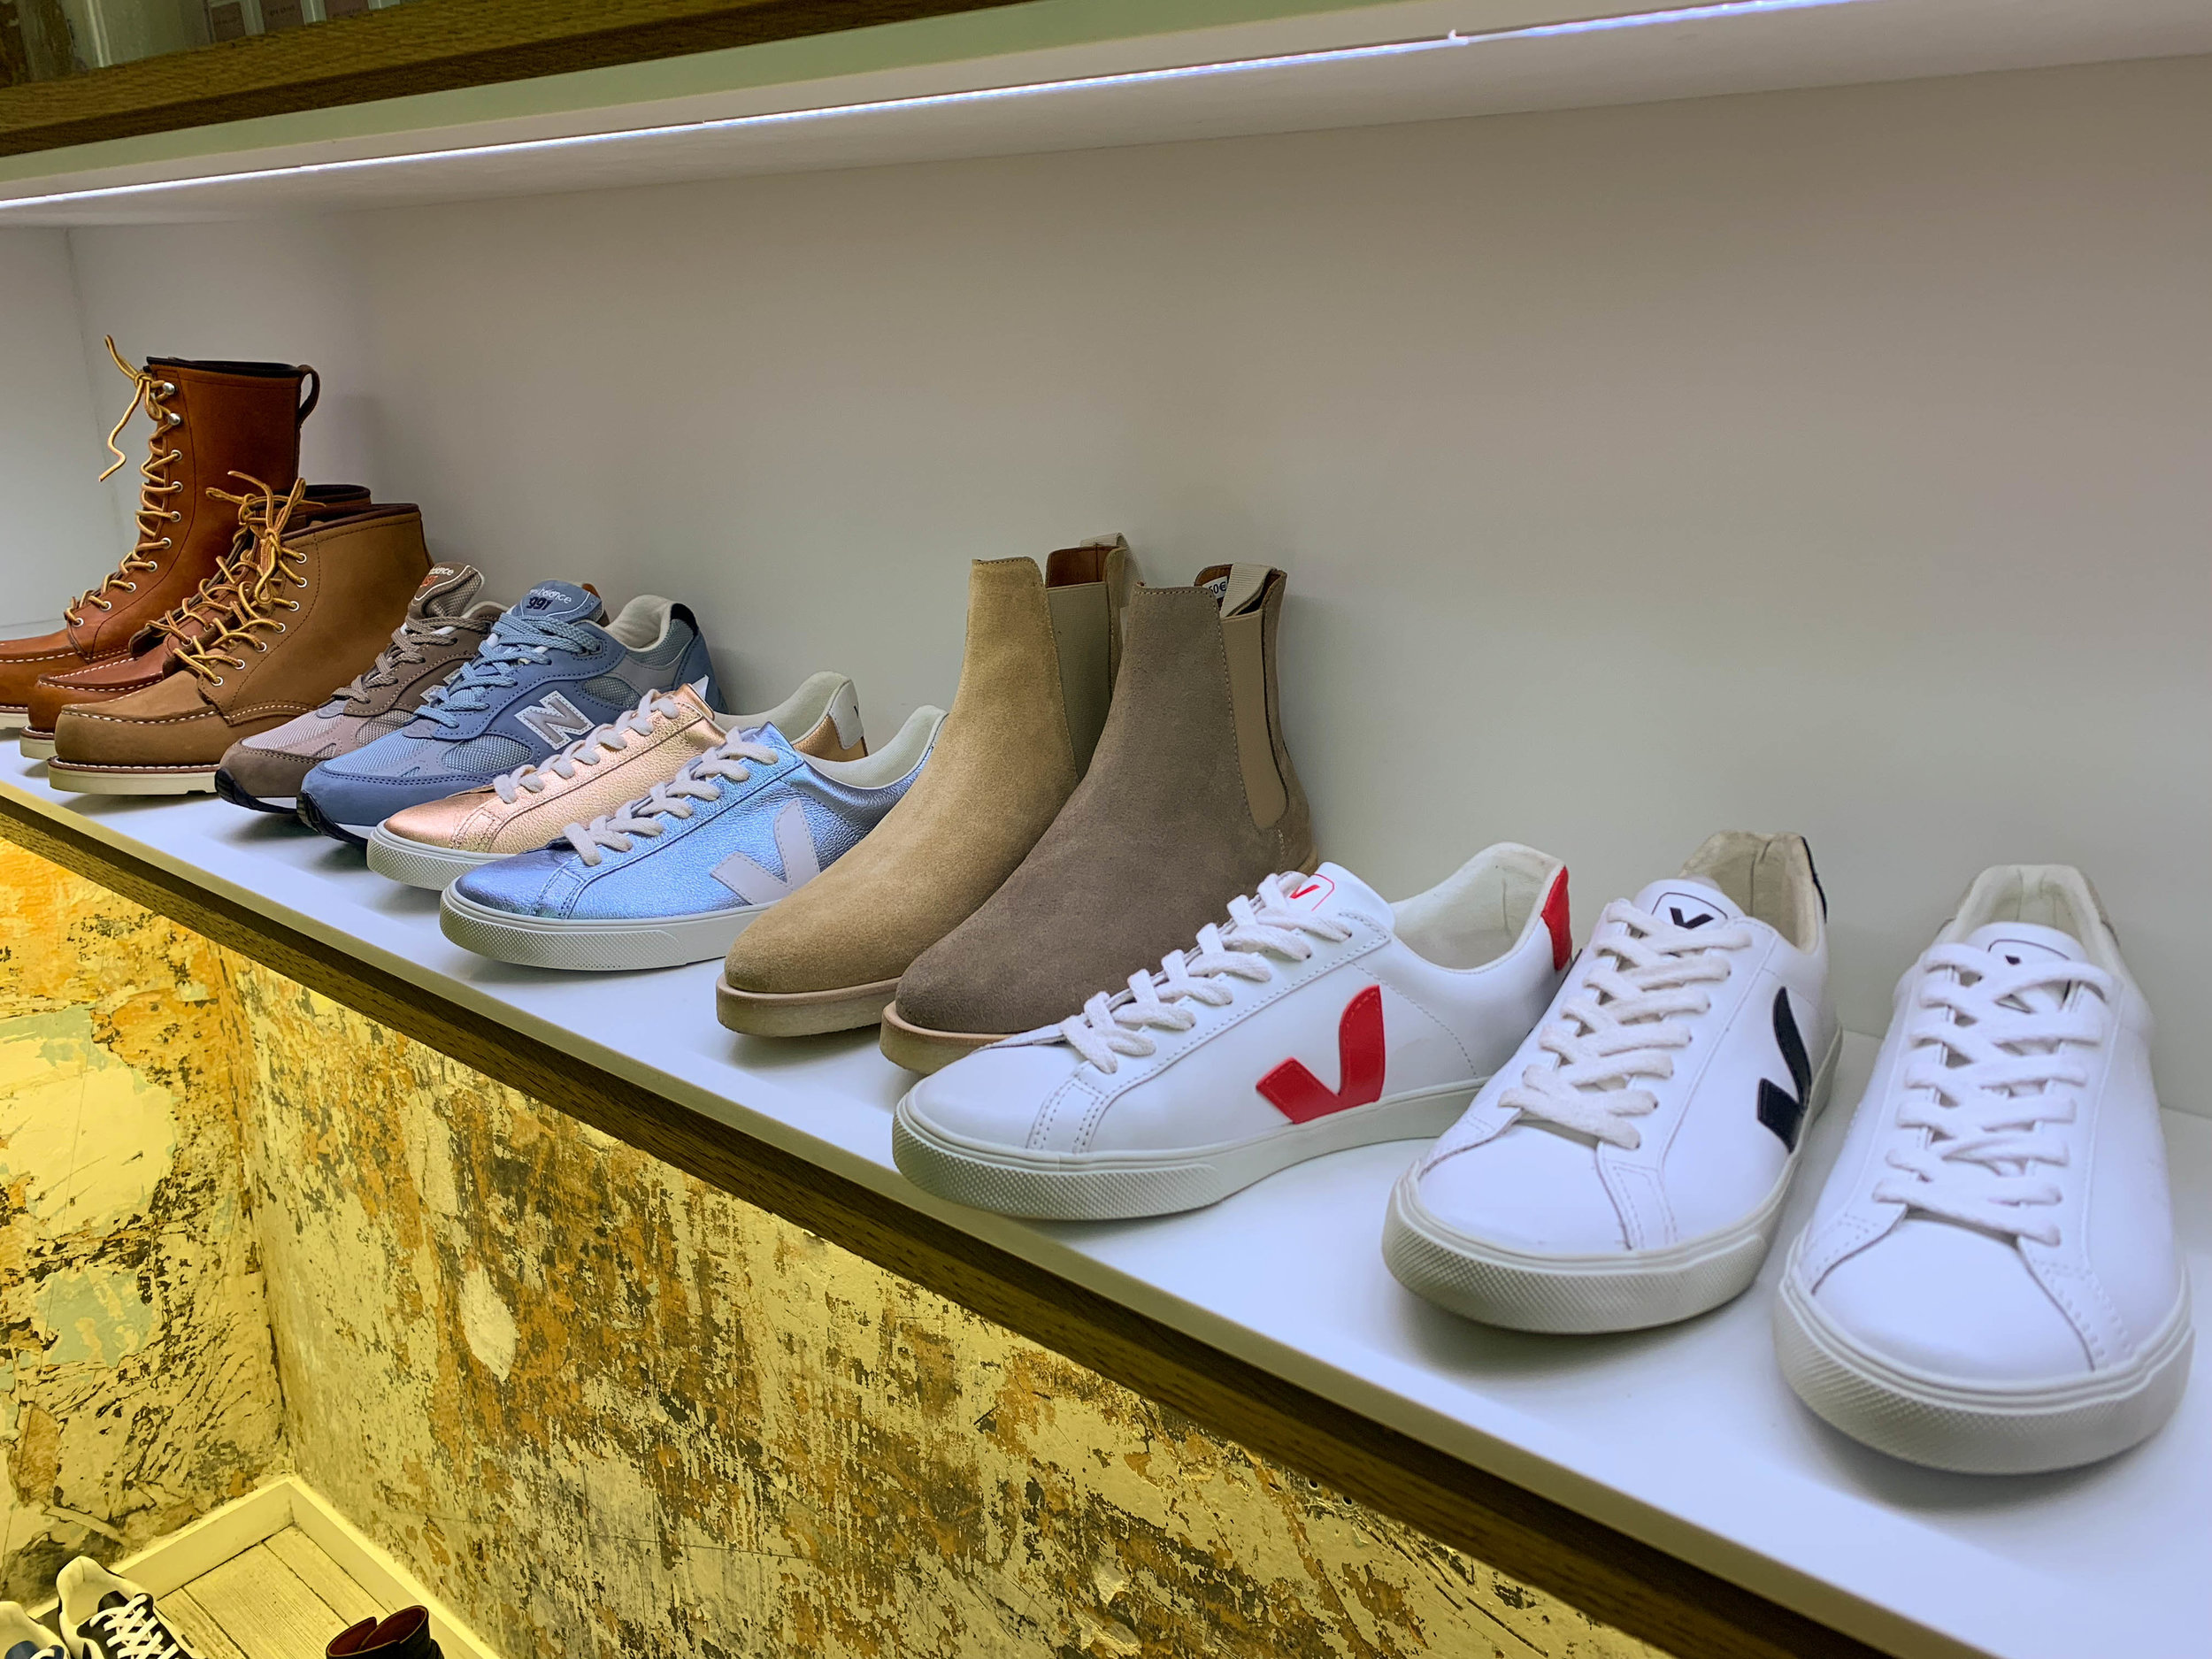 Since the store was started by  Veja 's founders, don't worry. The shoe selection will be good.